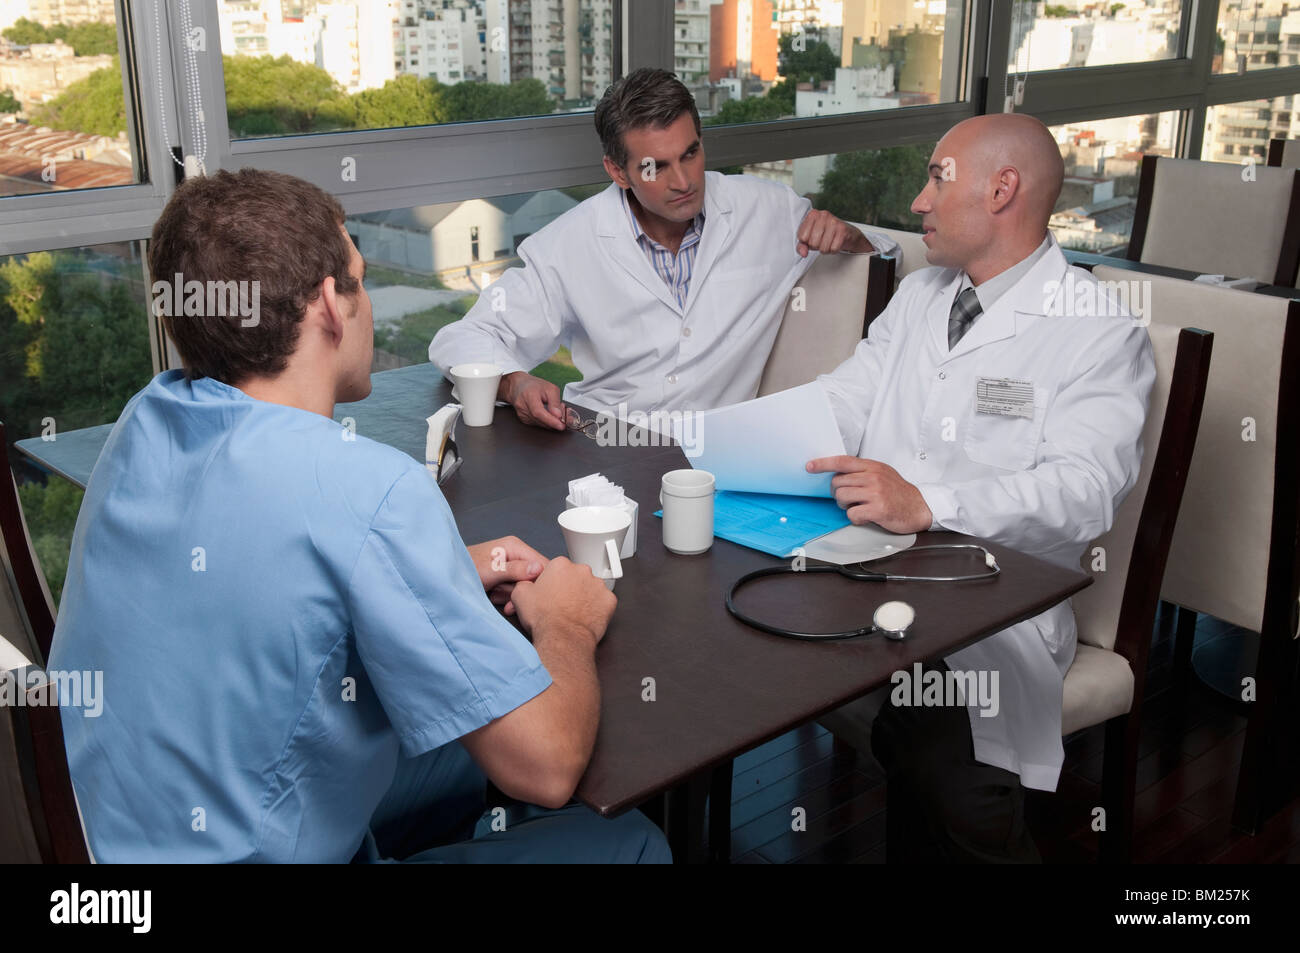 Doctors discussing in a cafeteria - Stock Image